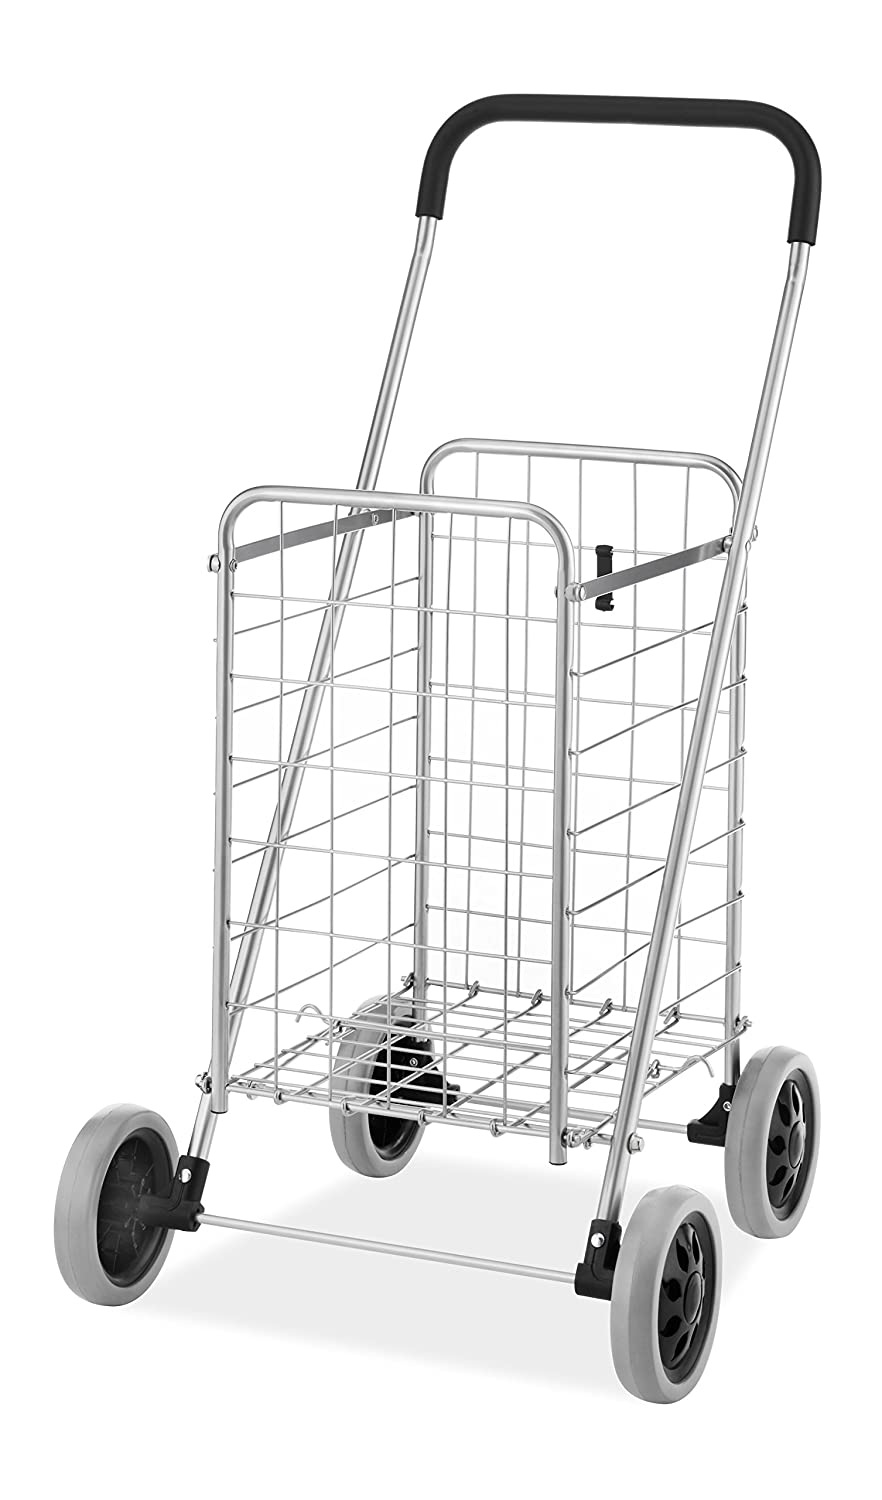 Folding shopping cart - metal collapsible shopping cart